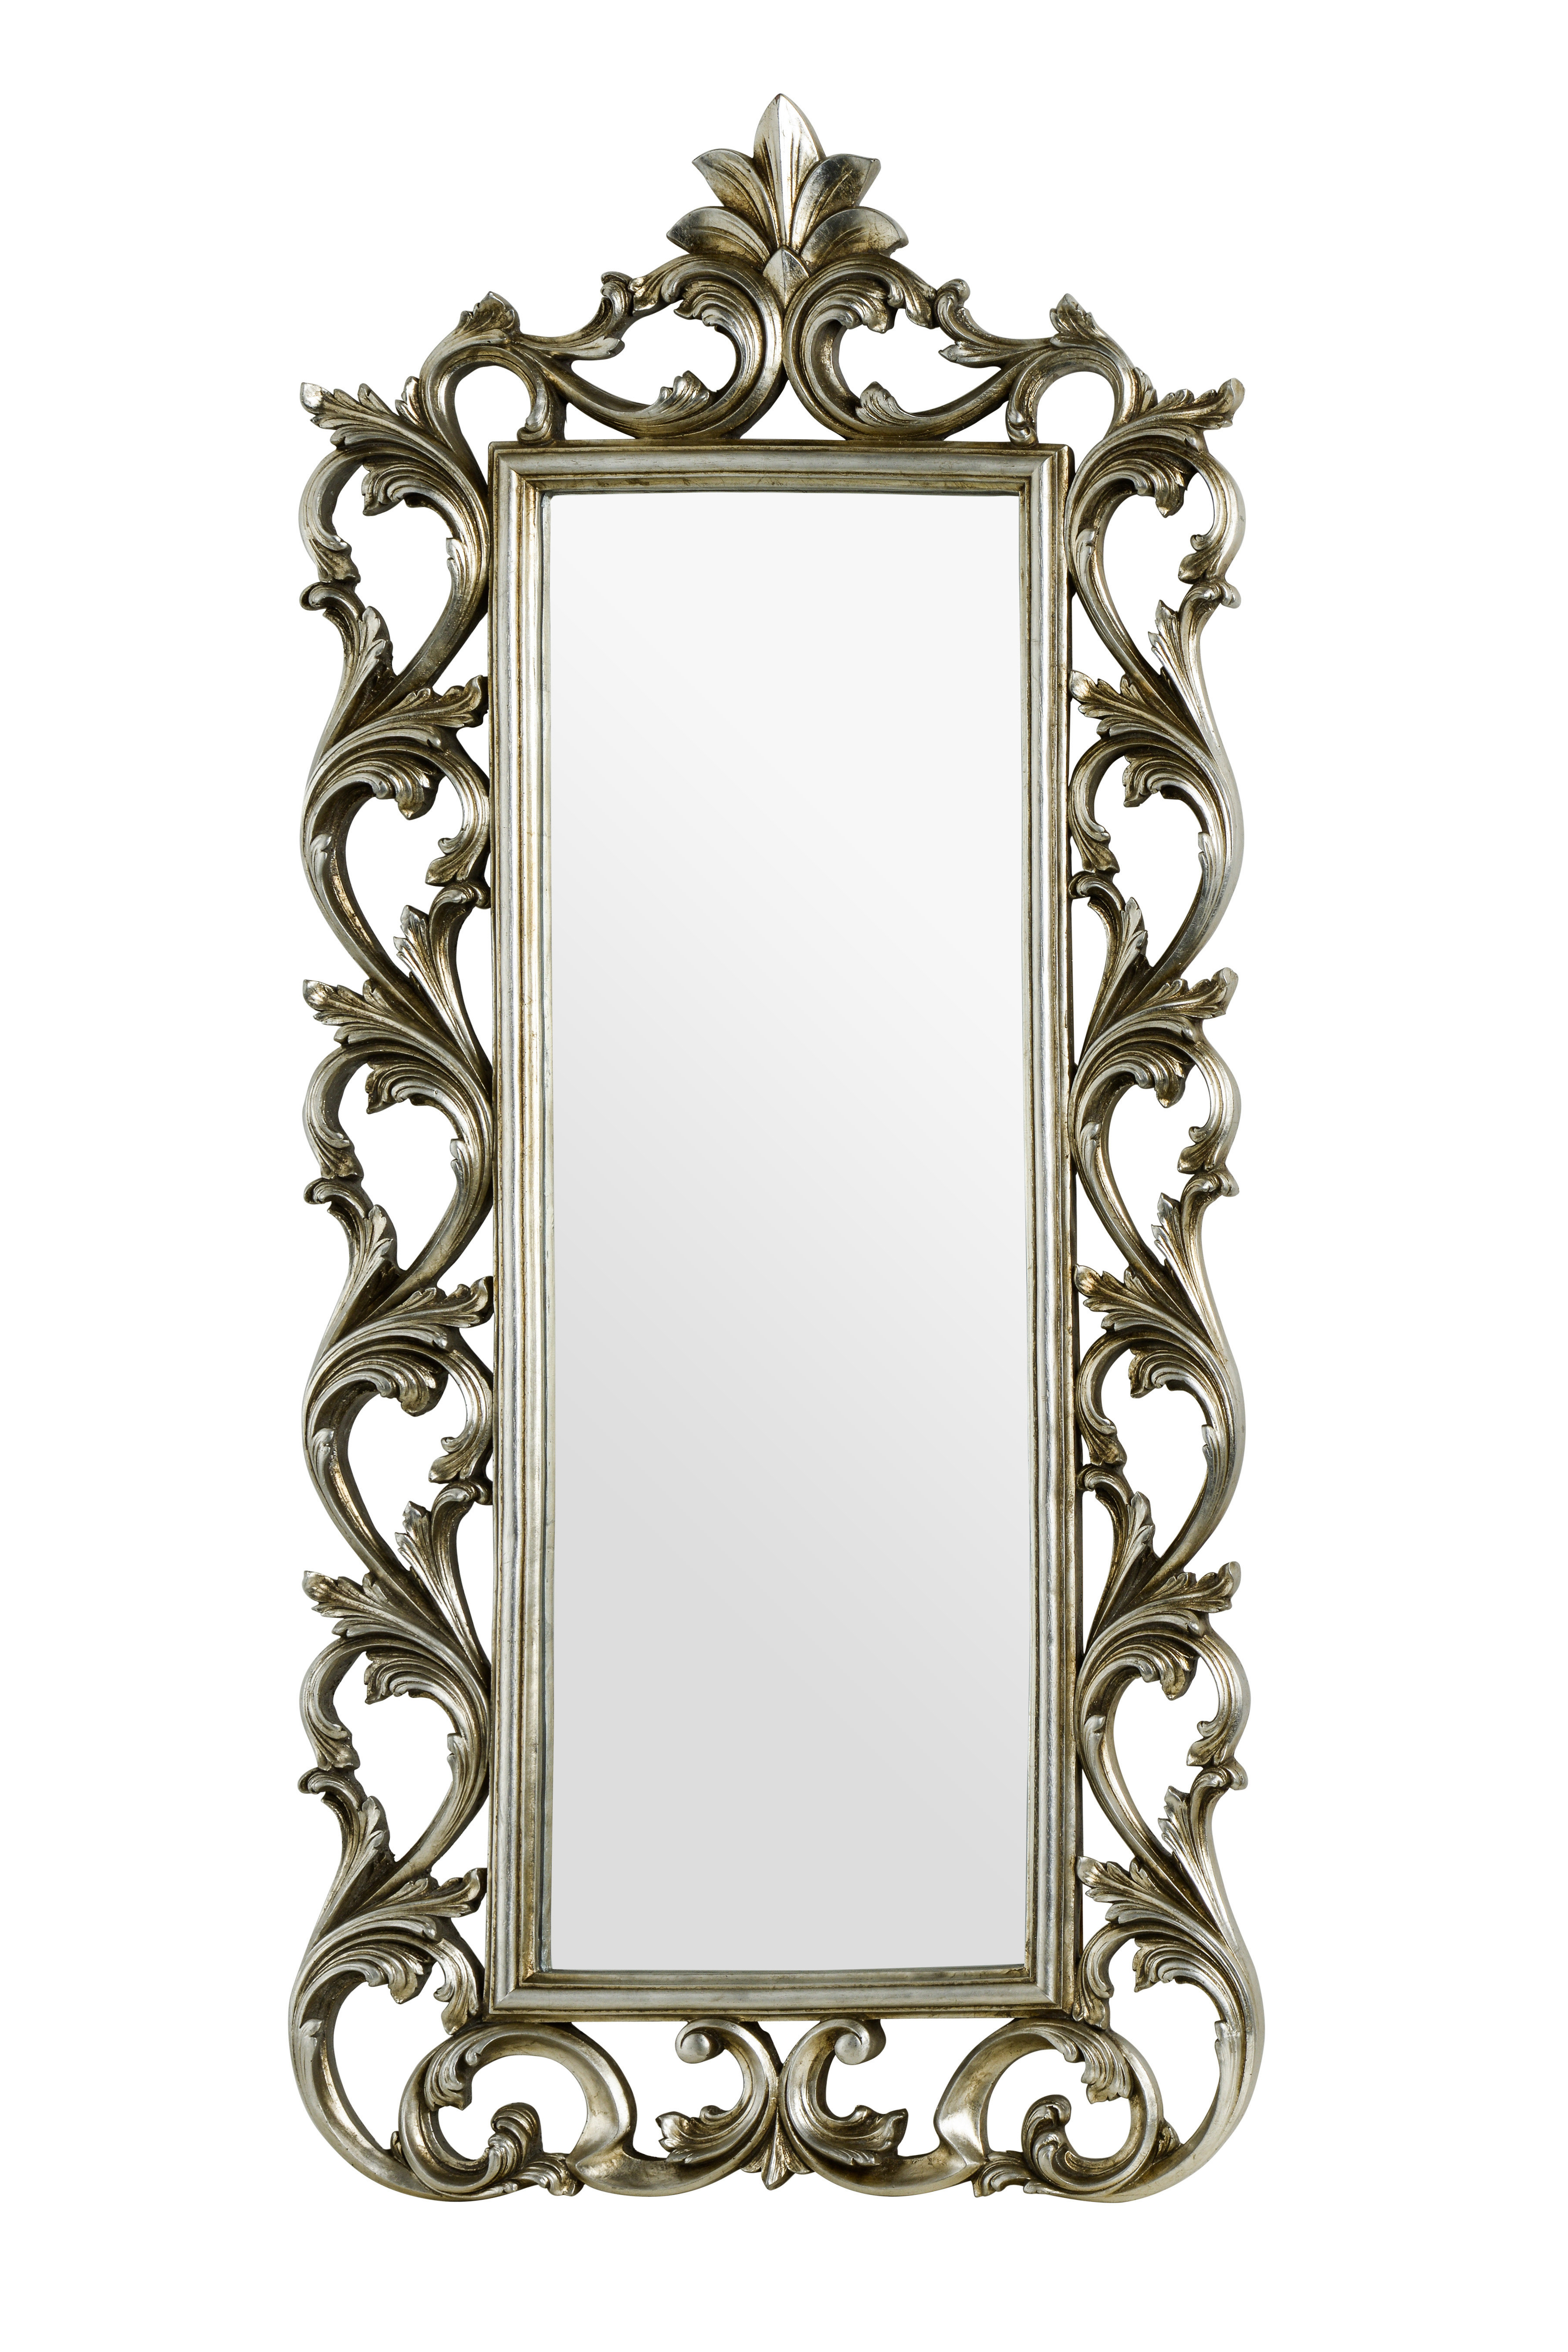 Ornate Wall Mirror within Rectangle Ornate Geometric Wall Mirrors (Image 19 of 30)